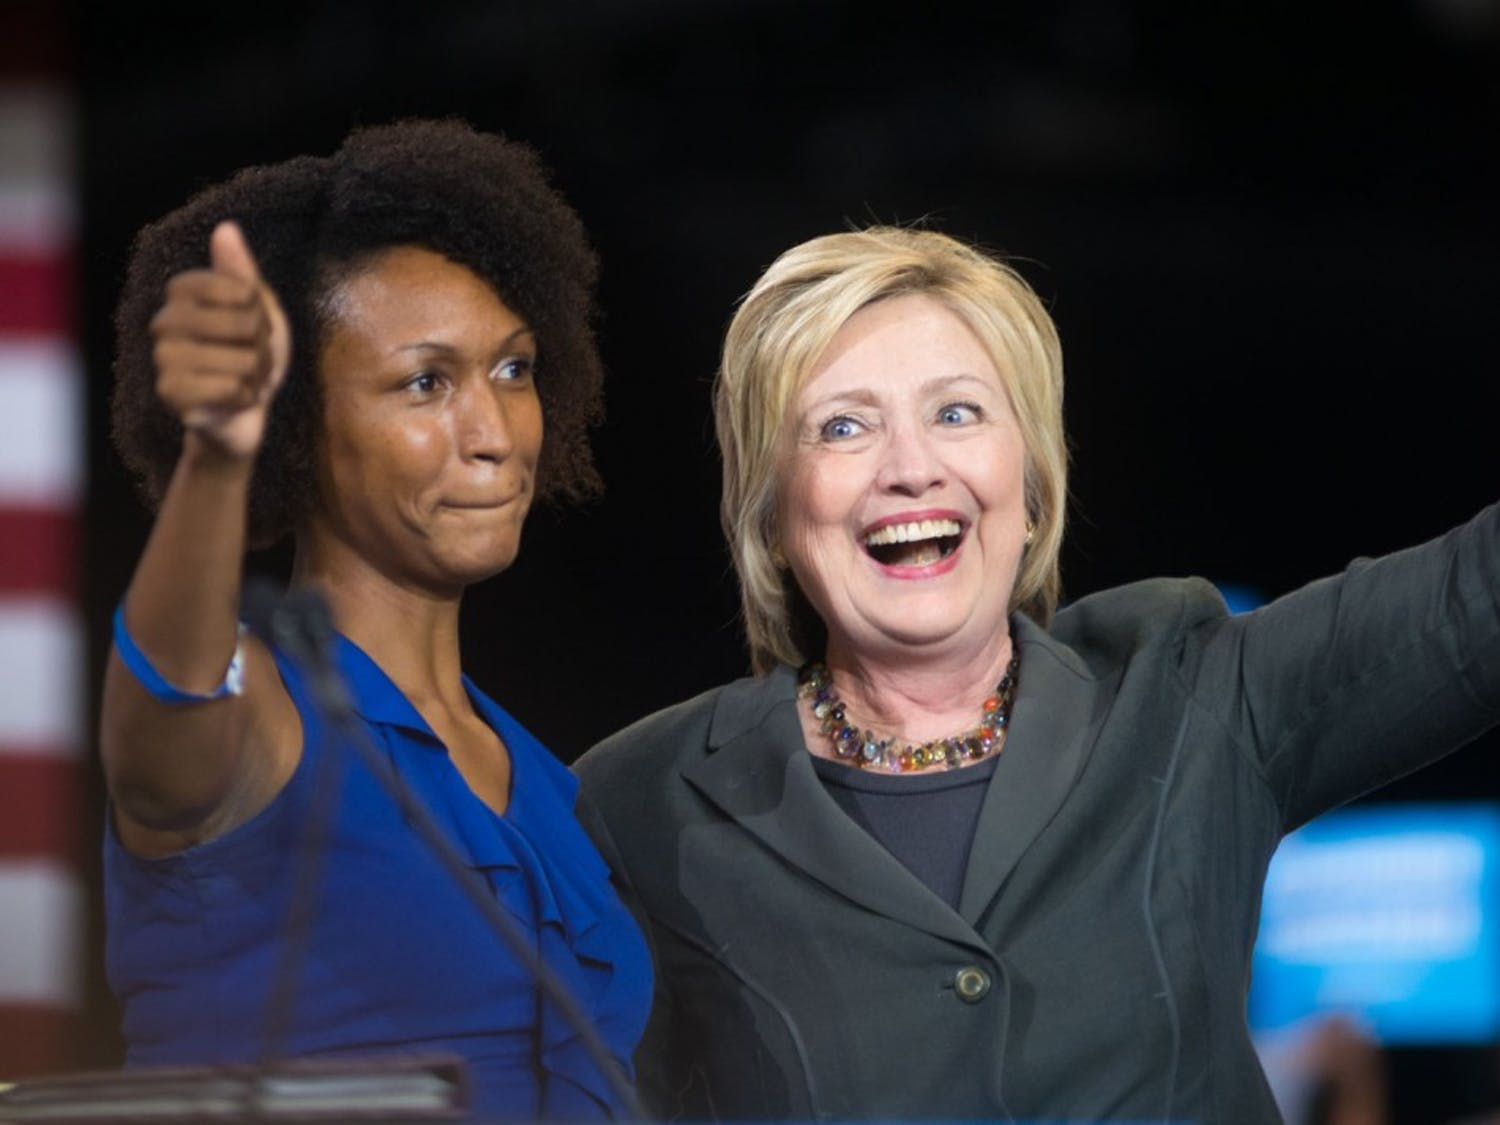 Presumptive Democratic Presidential nominee Hillary Clinton spoke at the North Carolina State Fairground's Exposition Center in Raleigh, NCon Wednesday, June 22.